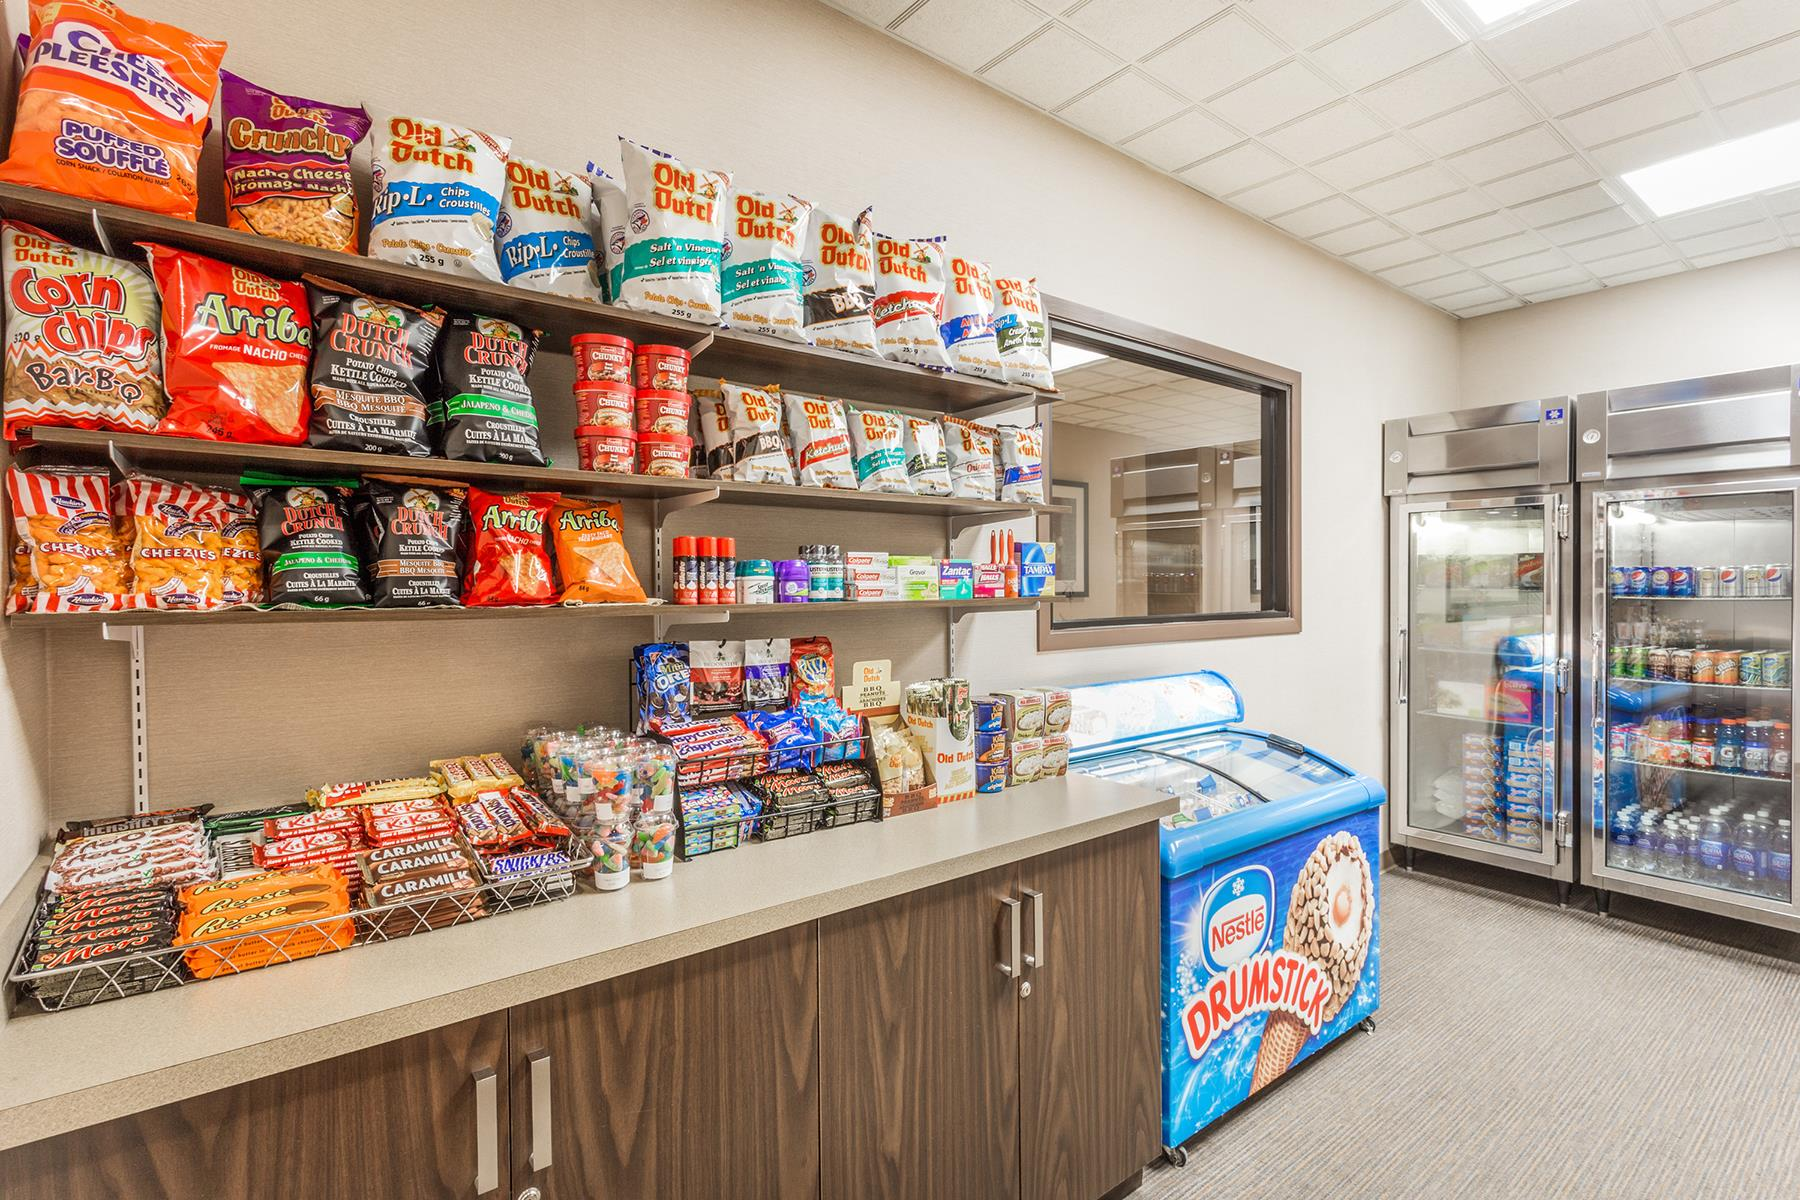 A convenience shop in the Wyndham Regina SK resort including soda, chips, candy bars, ice cream and more